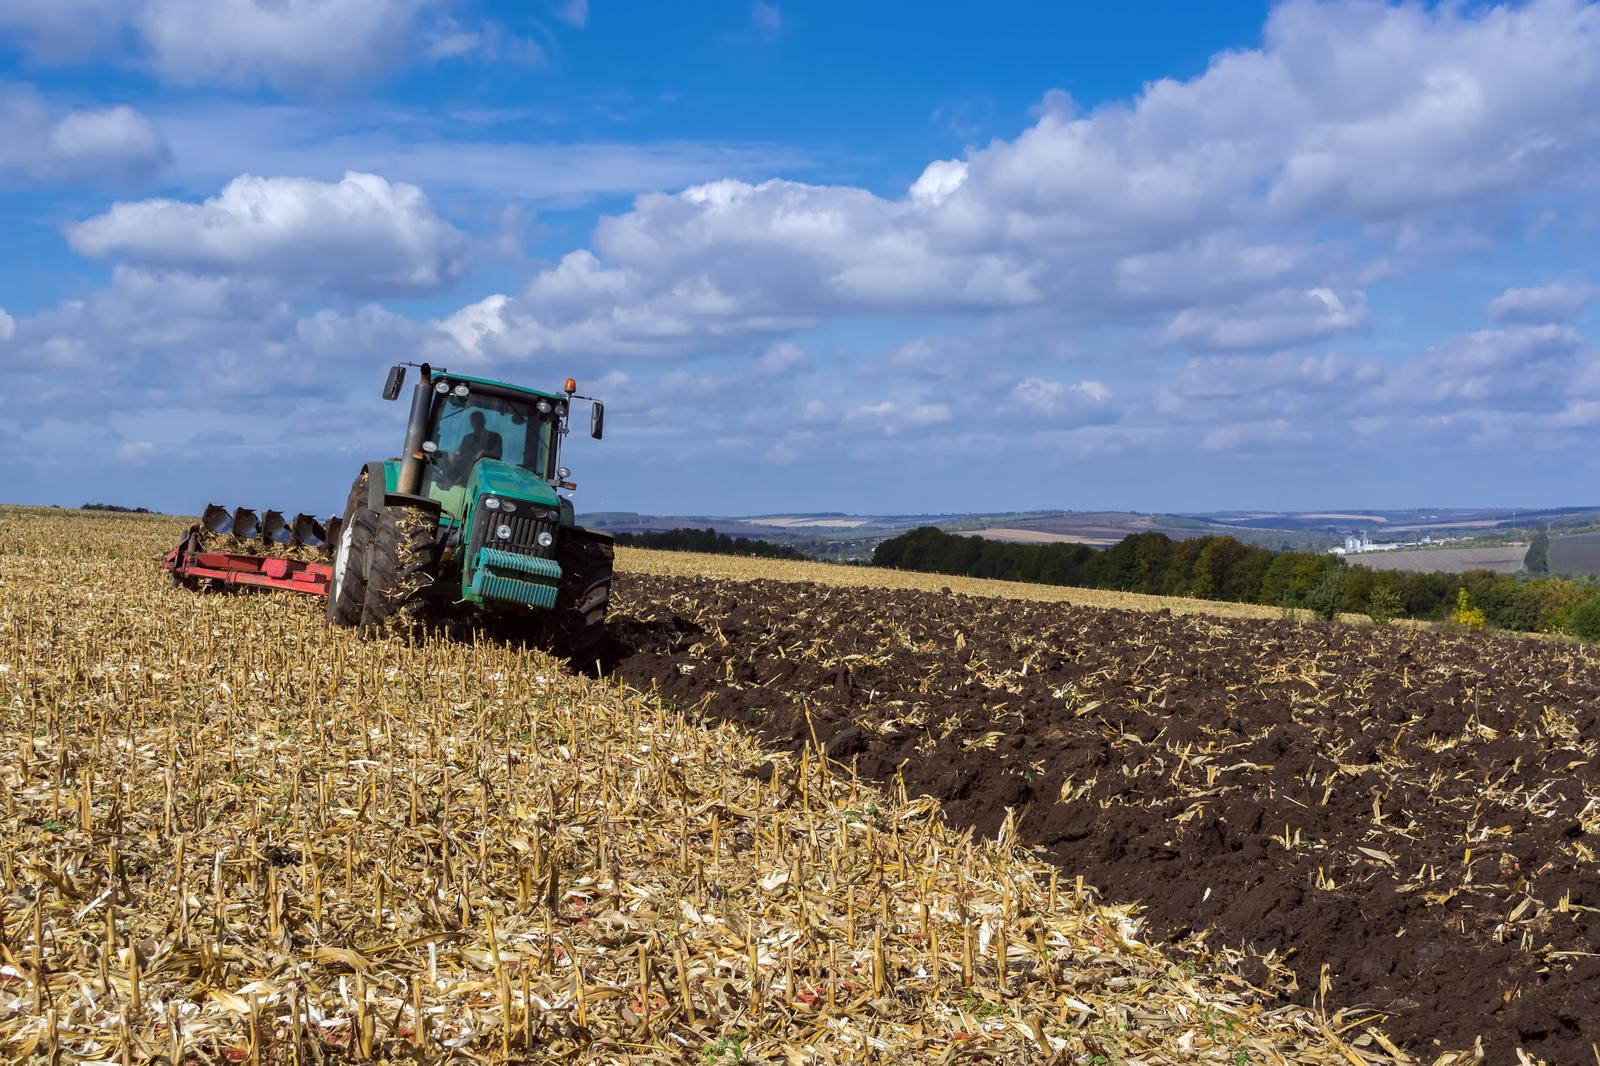 Wholesale of agricultural machinery, equipment and supplies in Viljandi county